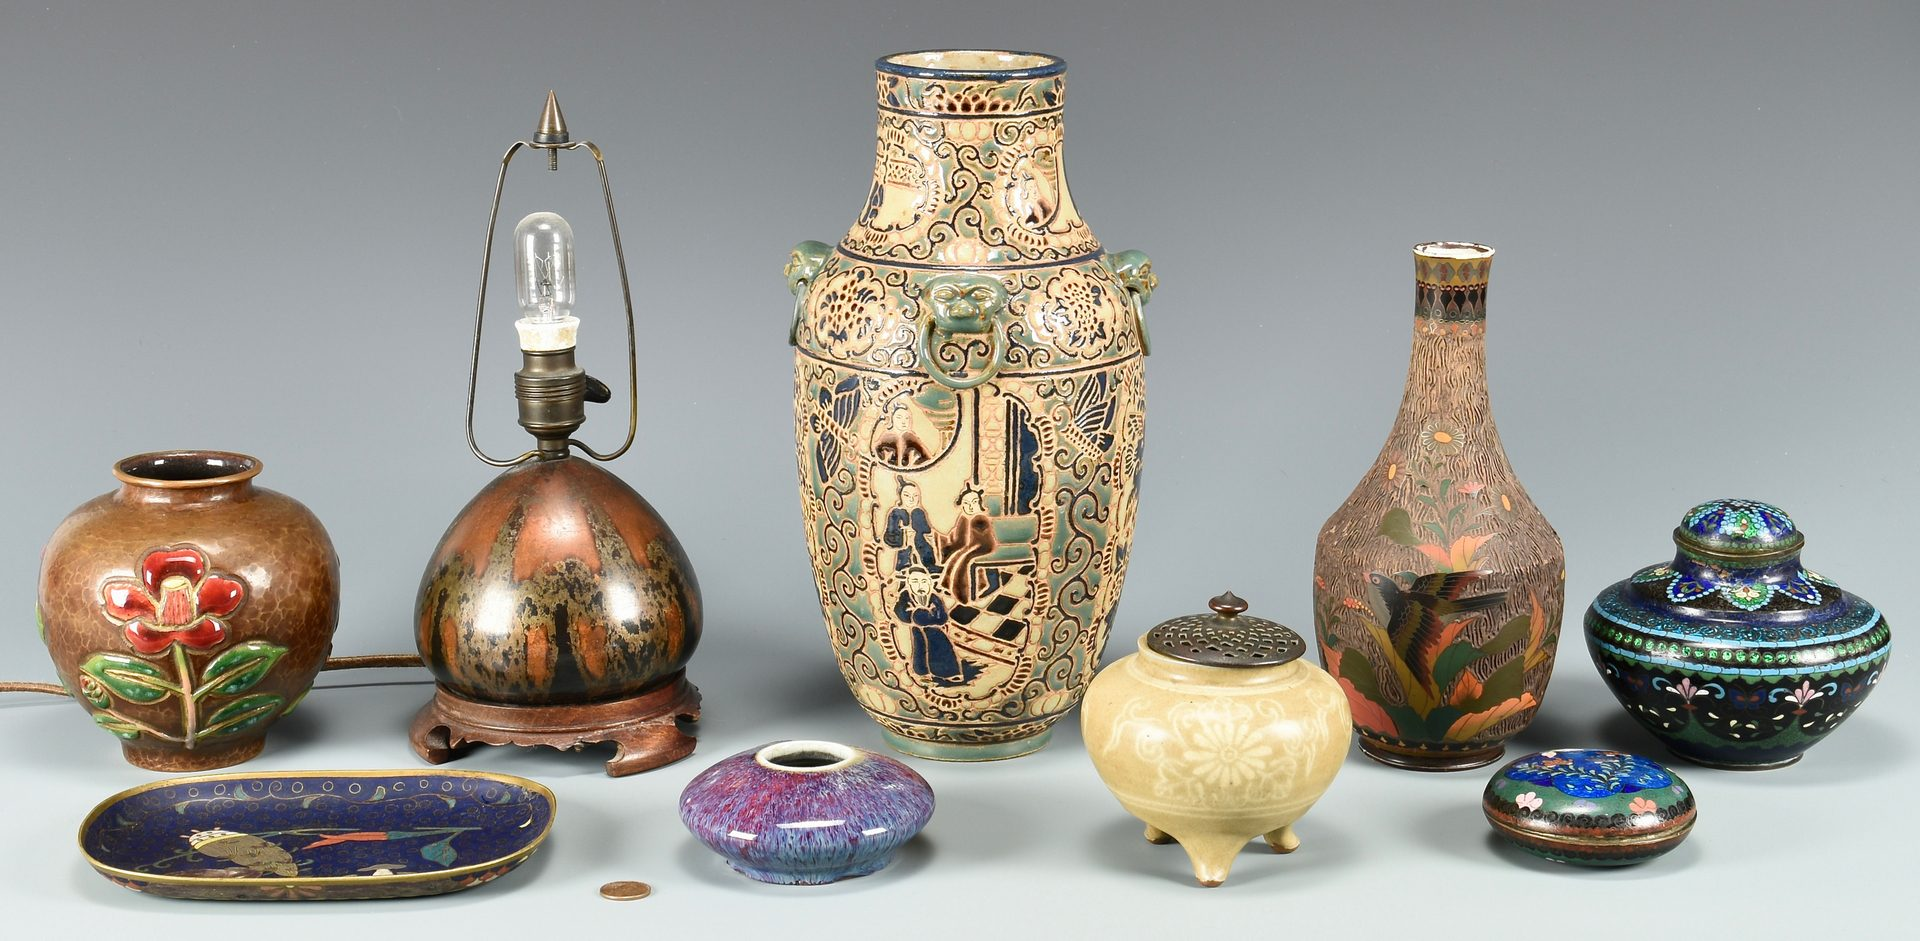 Lot 680: Group of Asian Decorative Items, 9 total